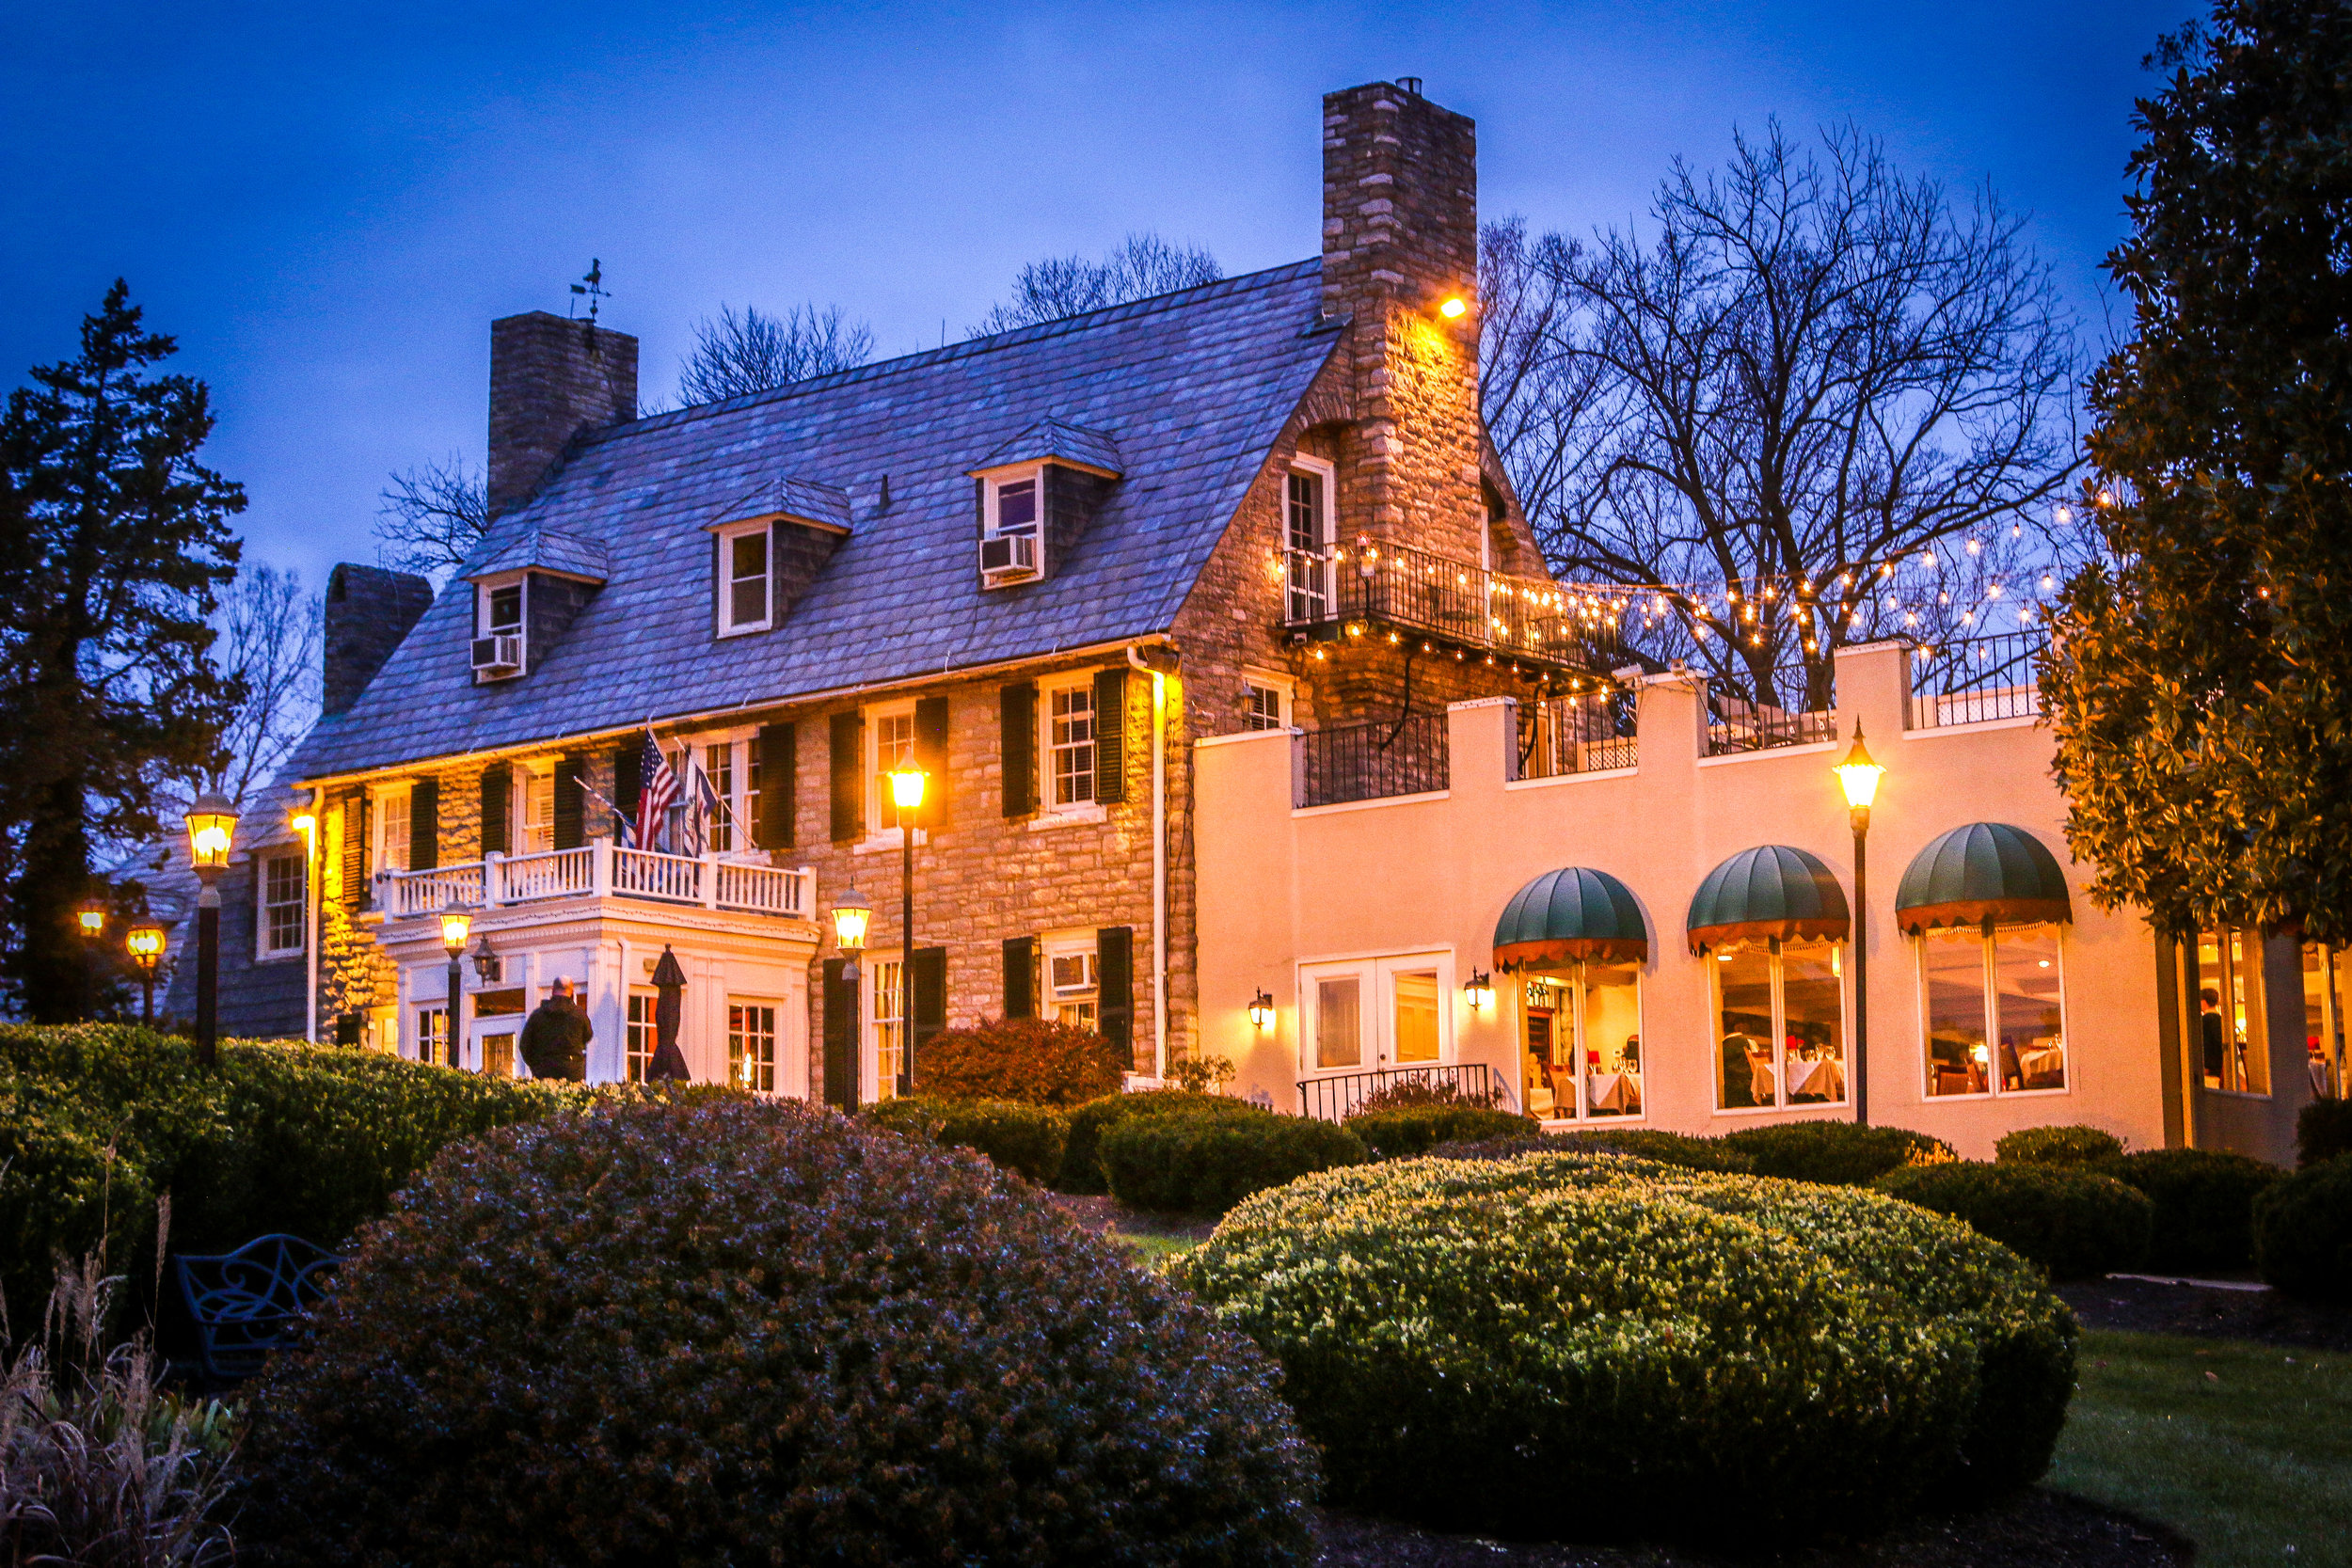 Bavarian Inn in Shepherdstown